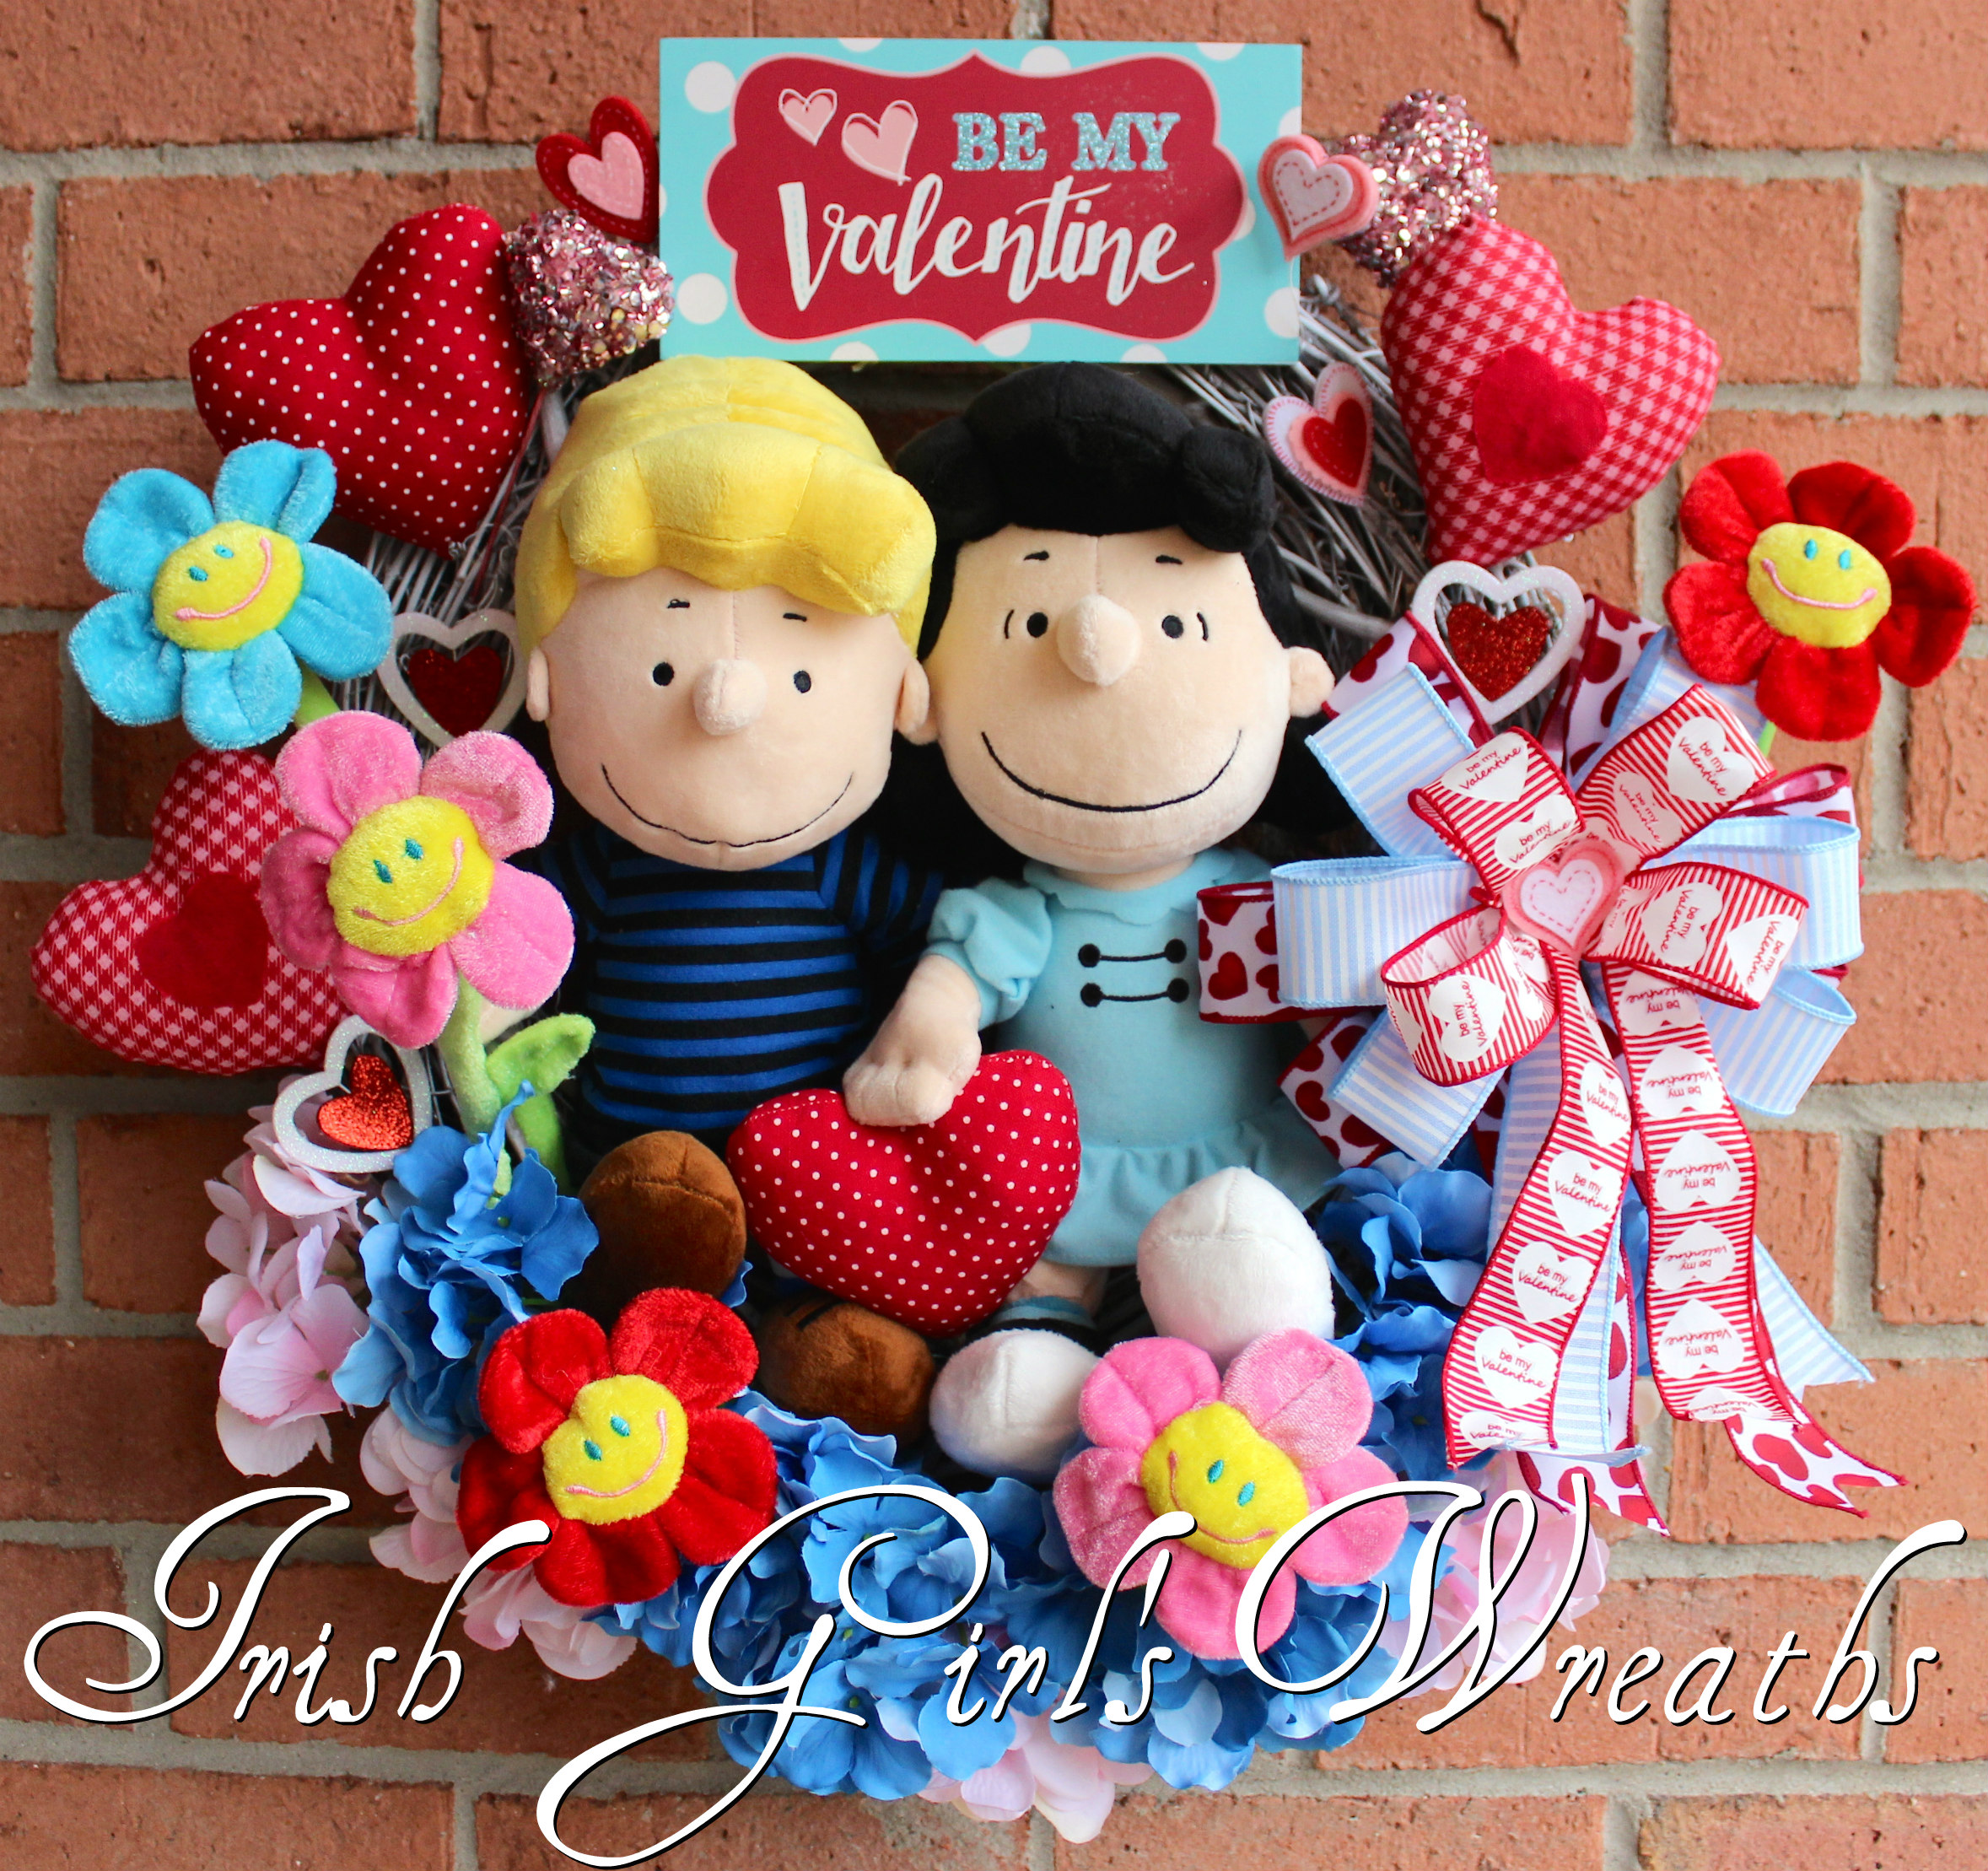 Peanuts Valentine Wreath, Lucy and Schroeder Be My Valentine Wreath